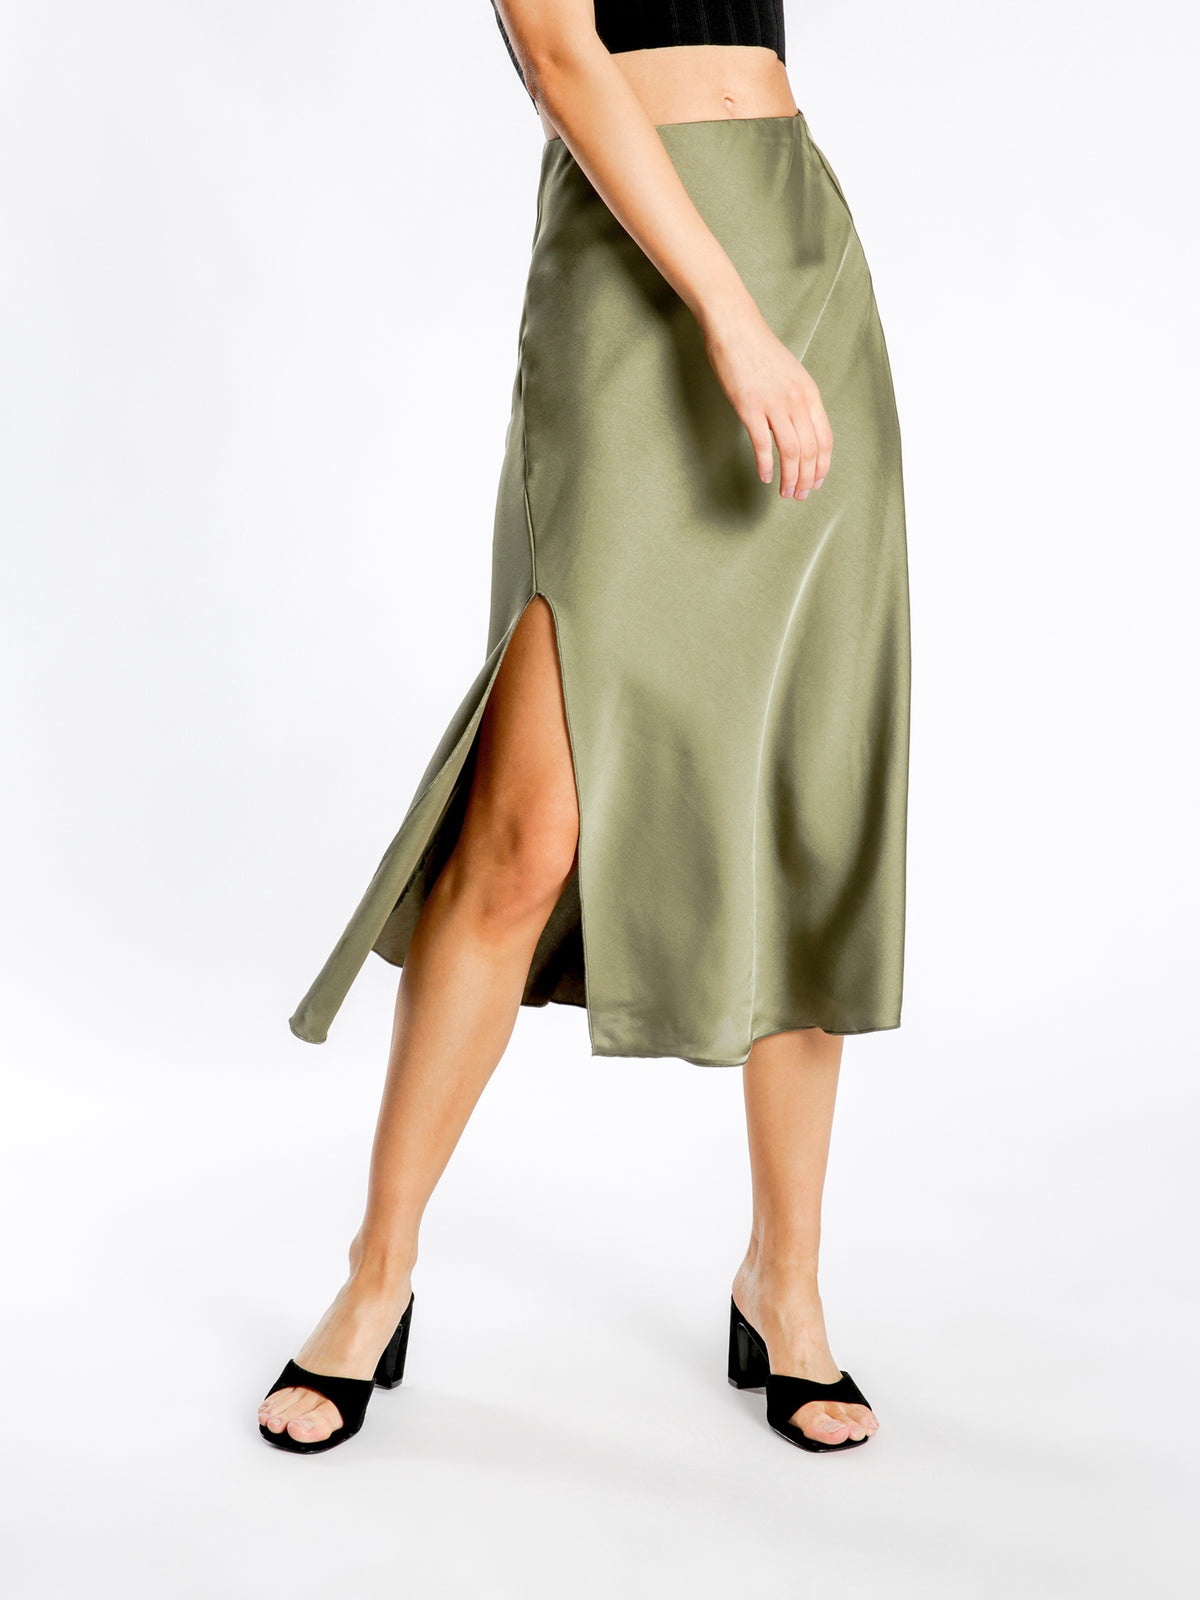 Tia Midi Skirt in Olive